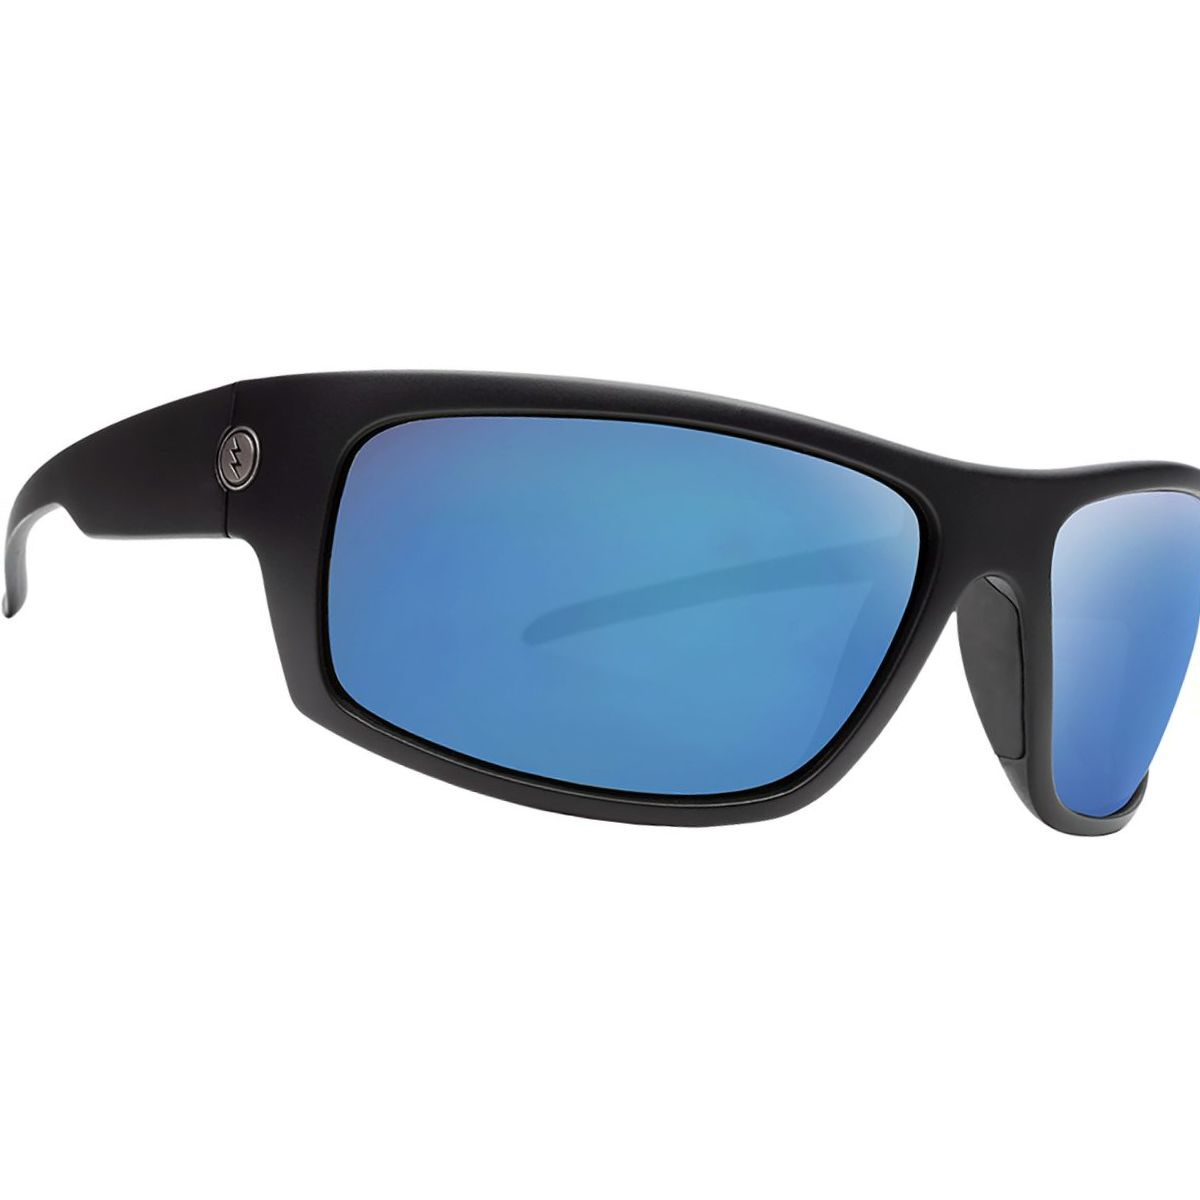 Electric Tech One Polarized Sunglasses - Men's